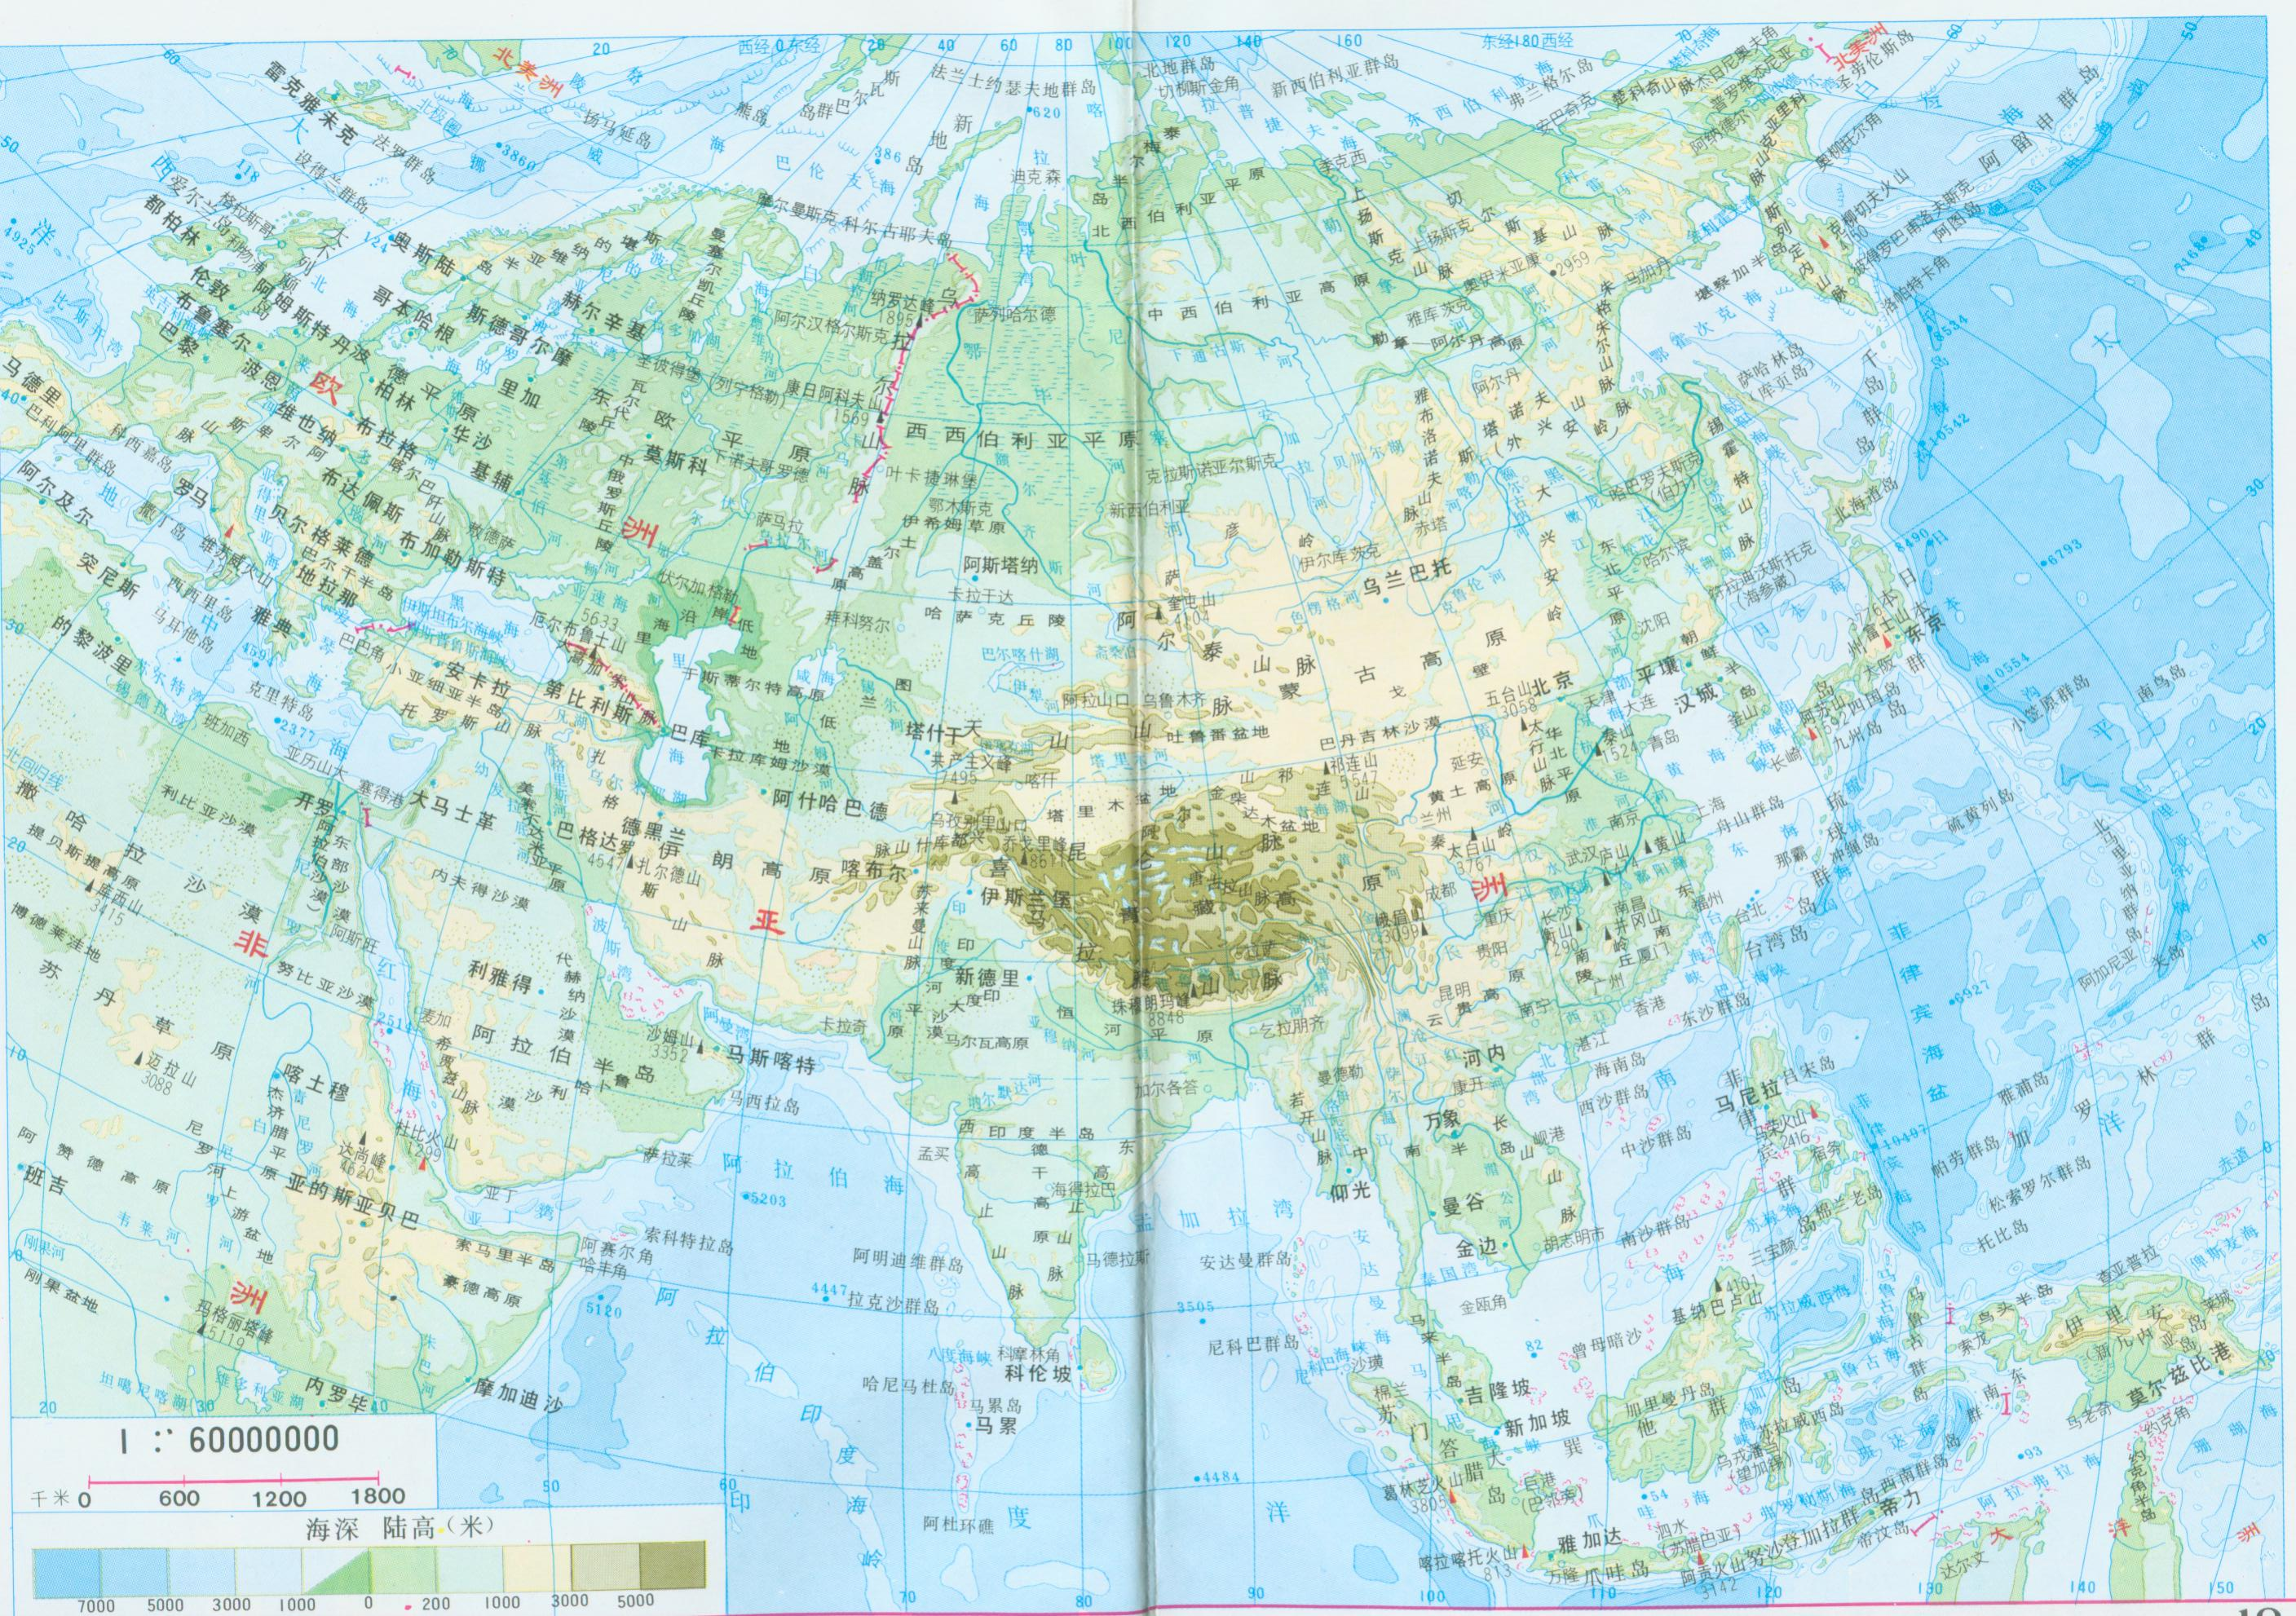 Maps of Asia | Map Liry | Maps of the World Map F on map l, map i, map a, map s, map c, map d, map e, map b,